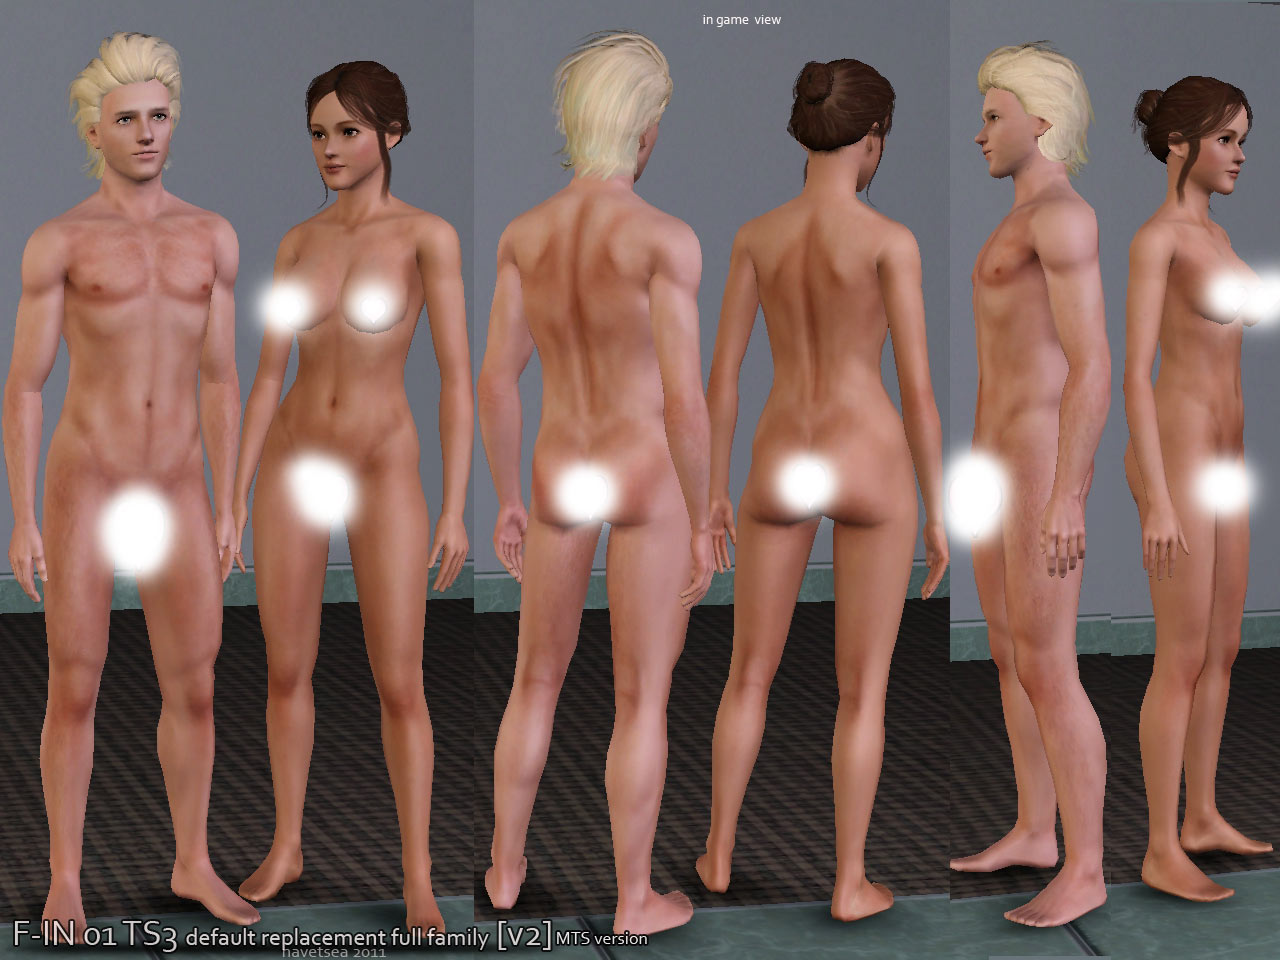 The sims family naked porncraft pics